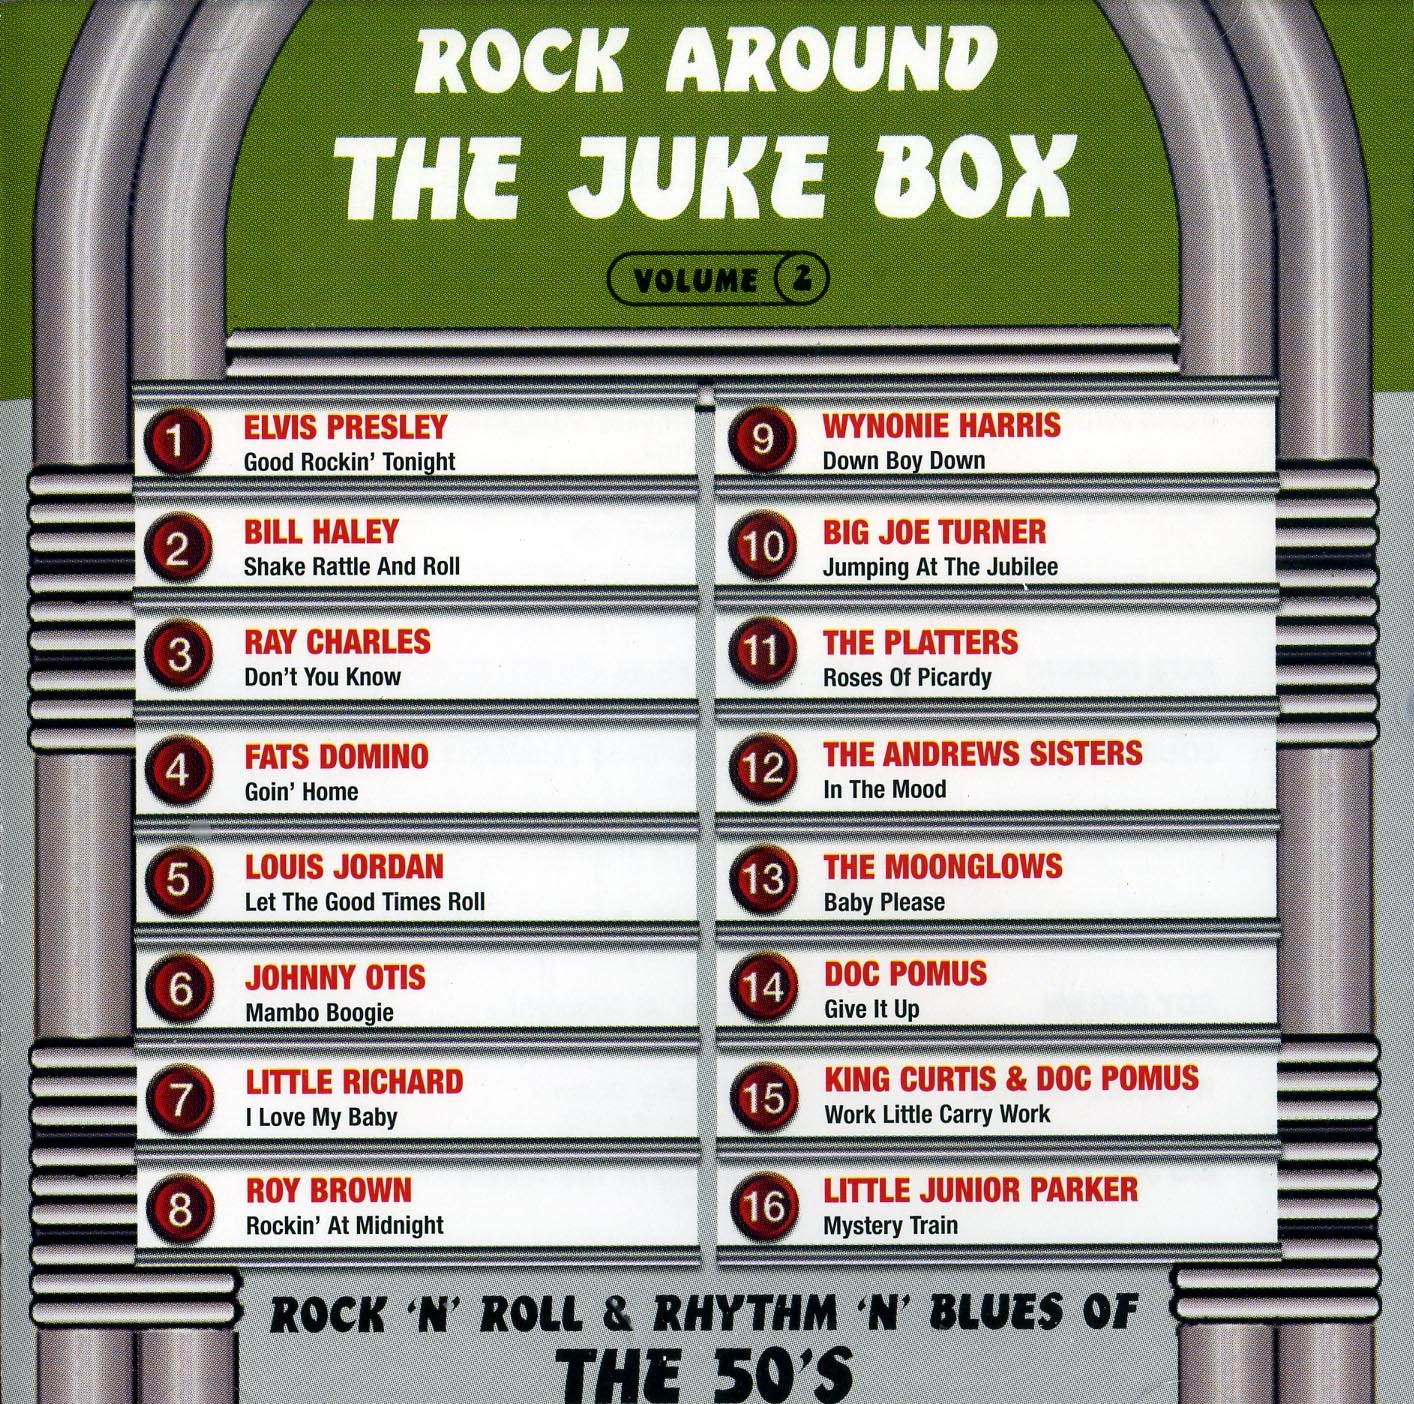 ROCK AROUND THE JUKE BOX 2 -CD